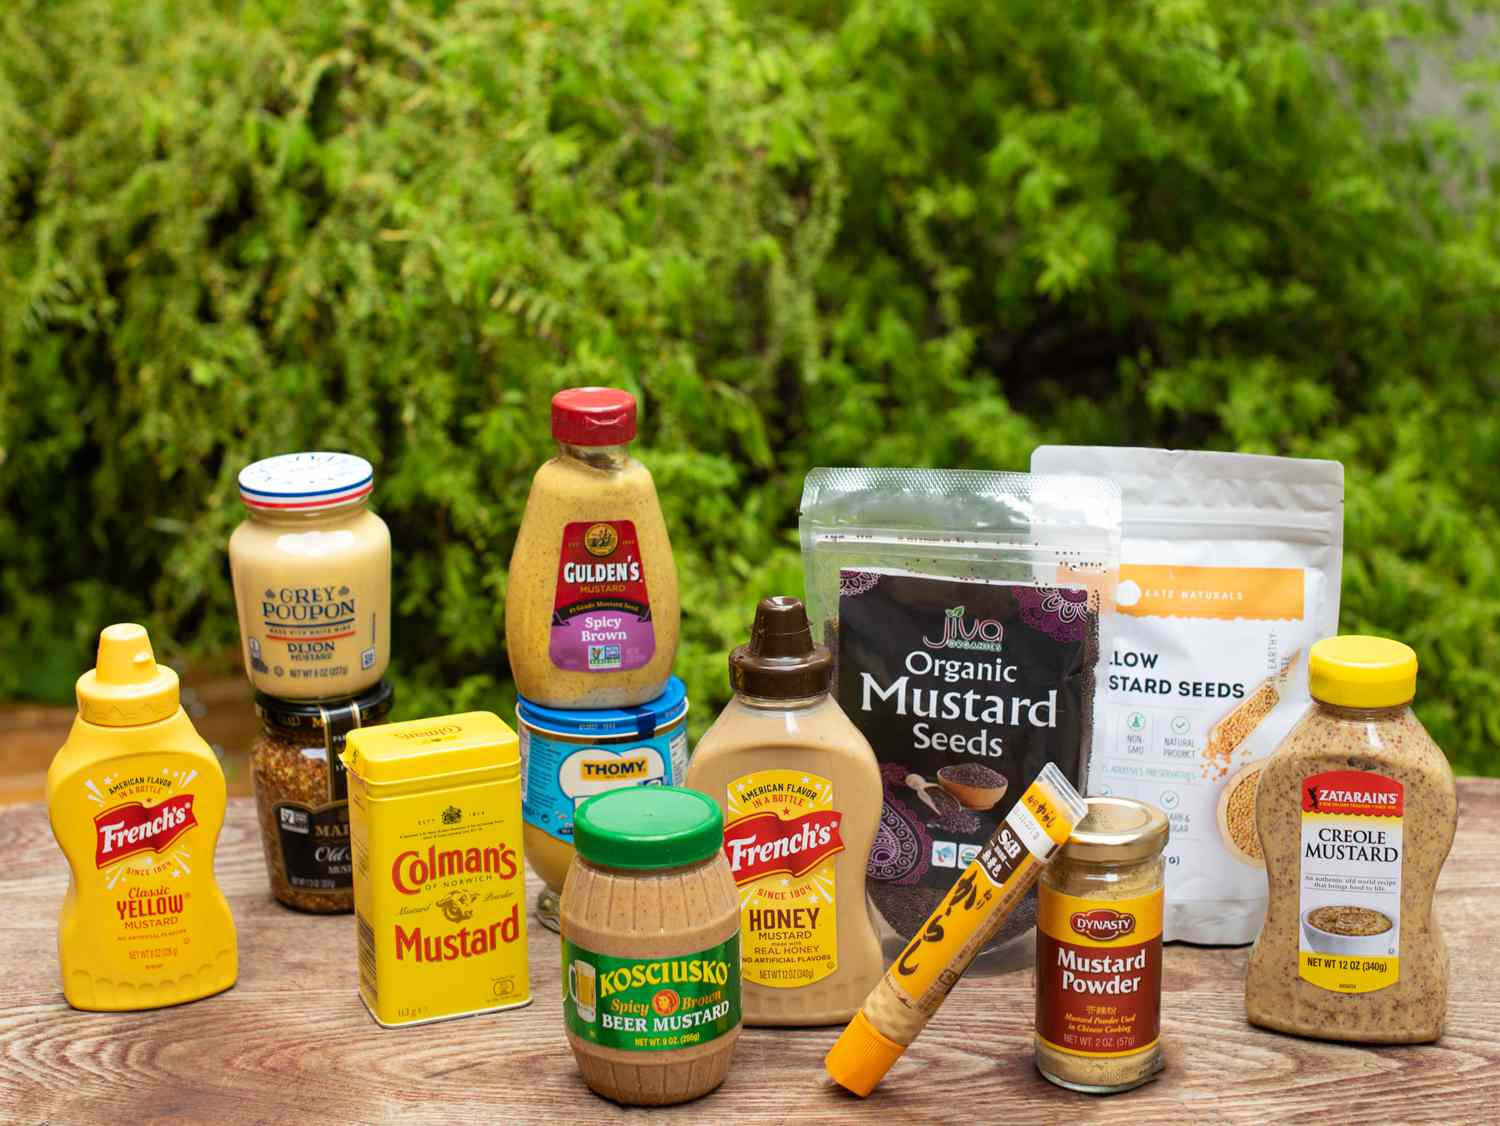 a group of mustard products on a table outside in a backyard